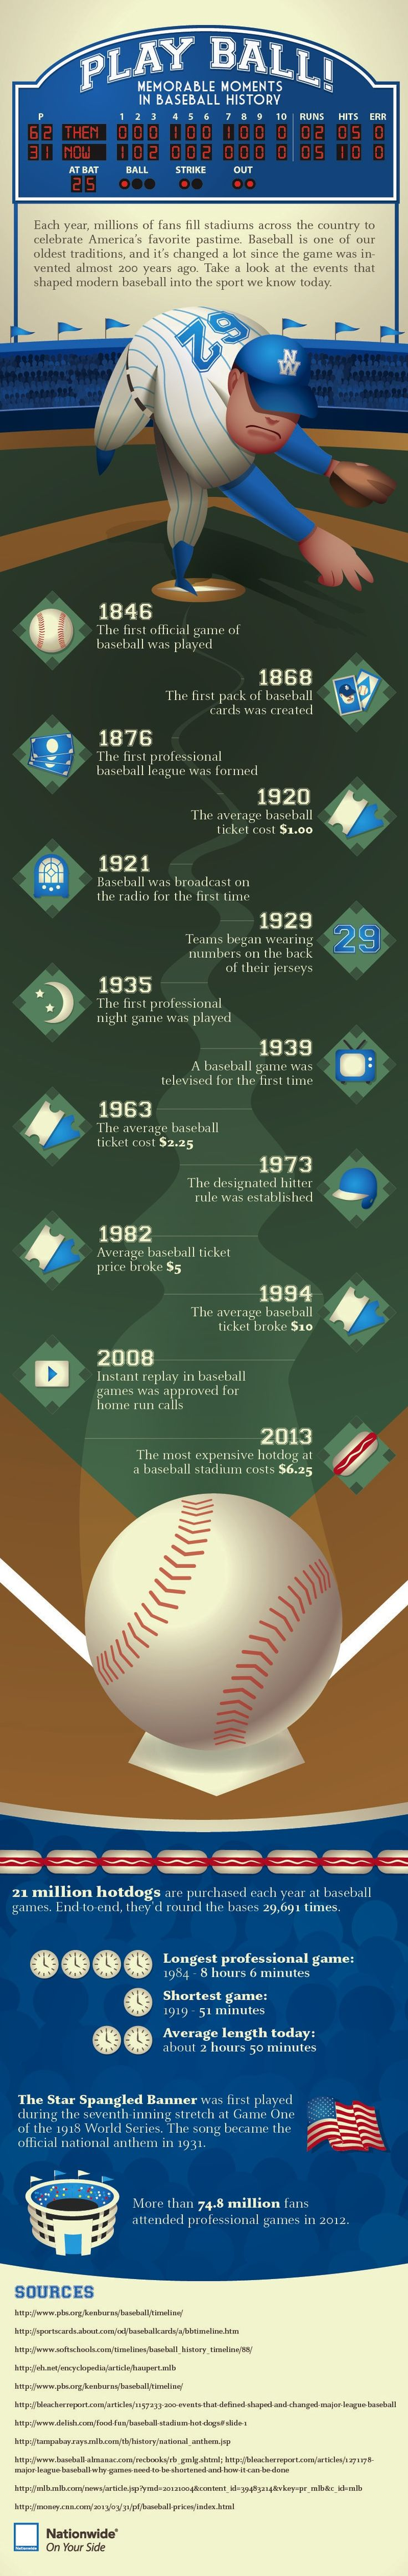 Baseball season is in full swing, so celebrate America's pastime with this infographic of interesting, thought-provoking and downright surprising baseball fun facts and stats. http://blog.nationwide.com/baseball-facts-infographic?WT.tsrc=SM_NW